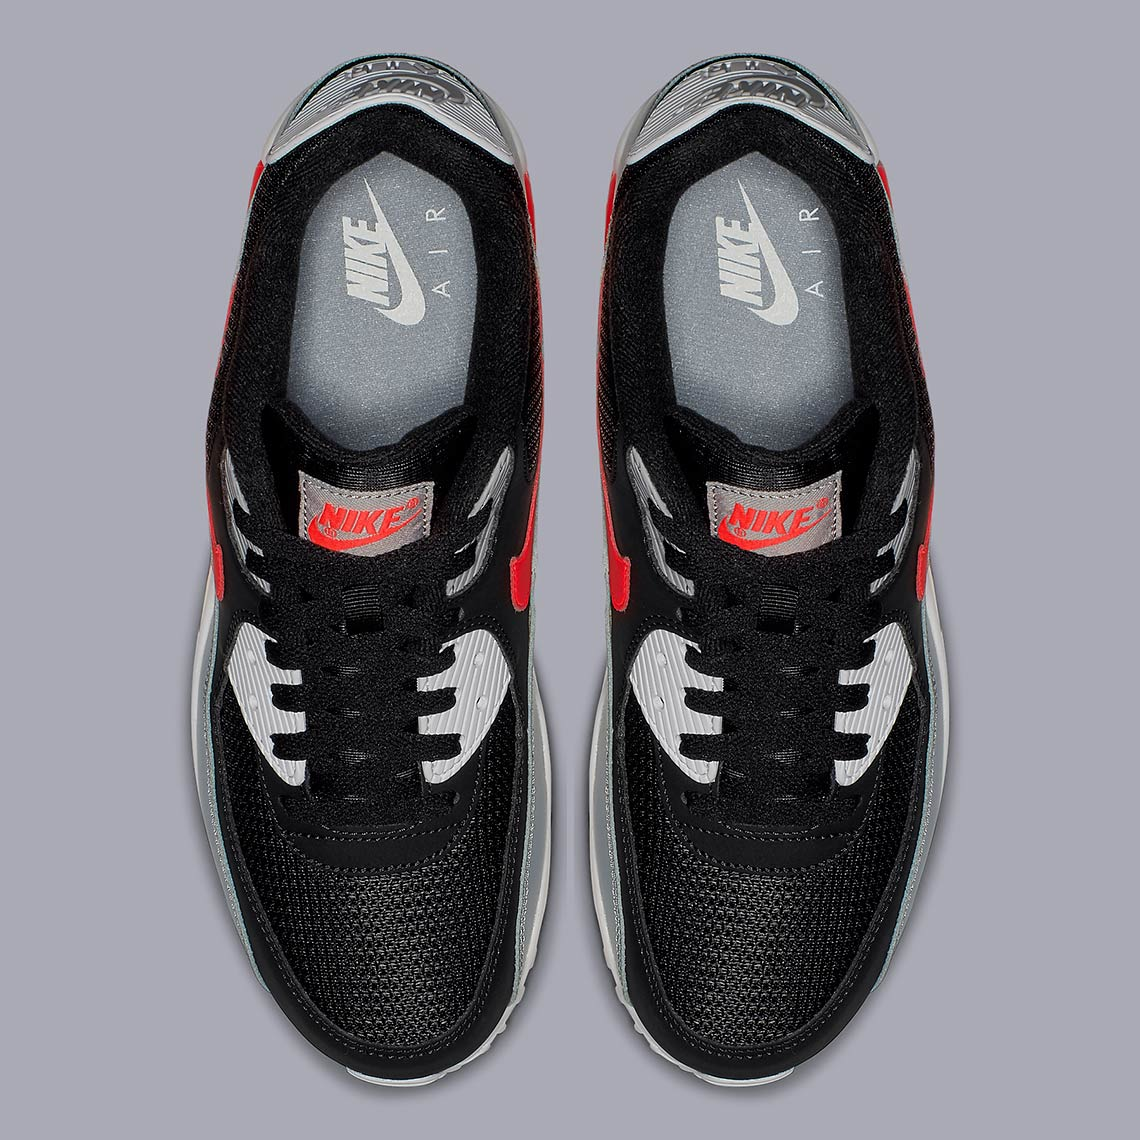 competitive price 058ea 972d1 Nike Air Max 90 Infrared AJ1285-012 Release Info   SneakerNews.com